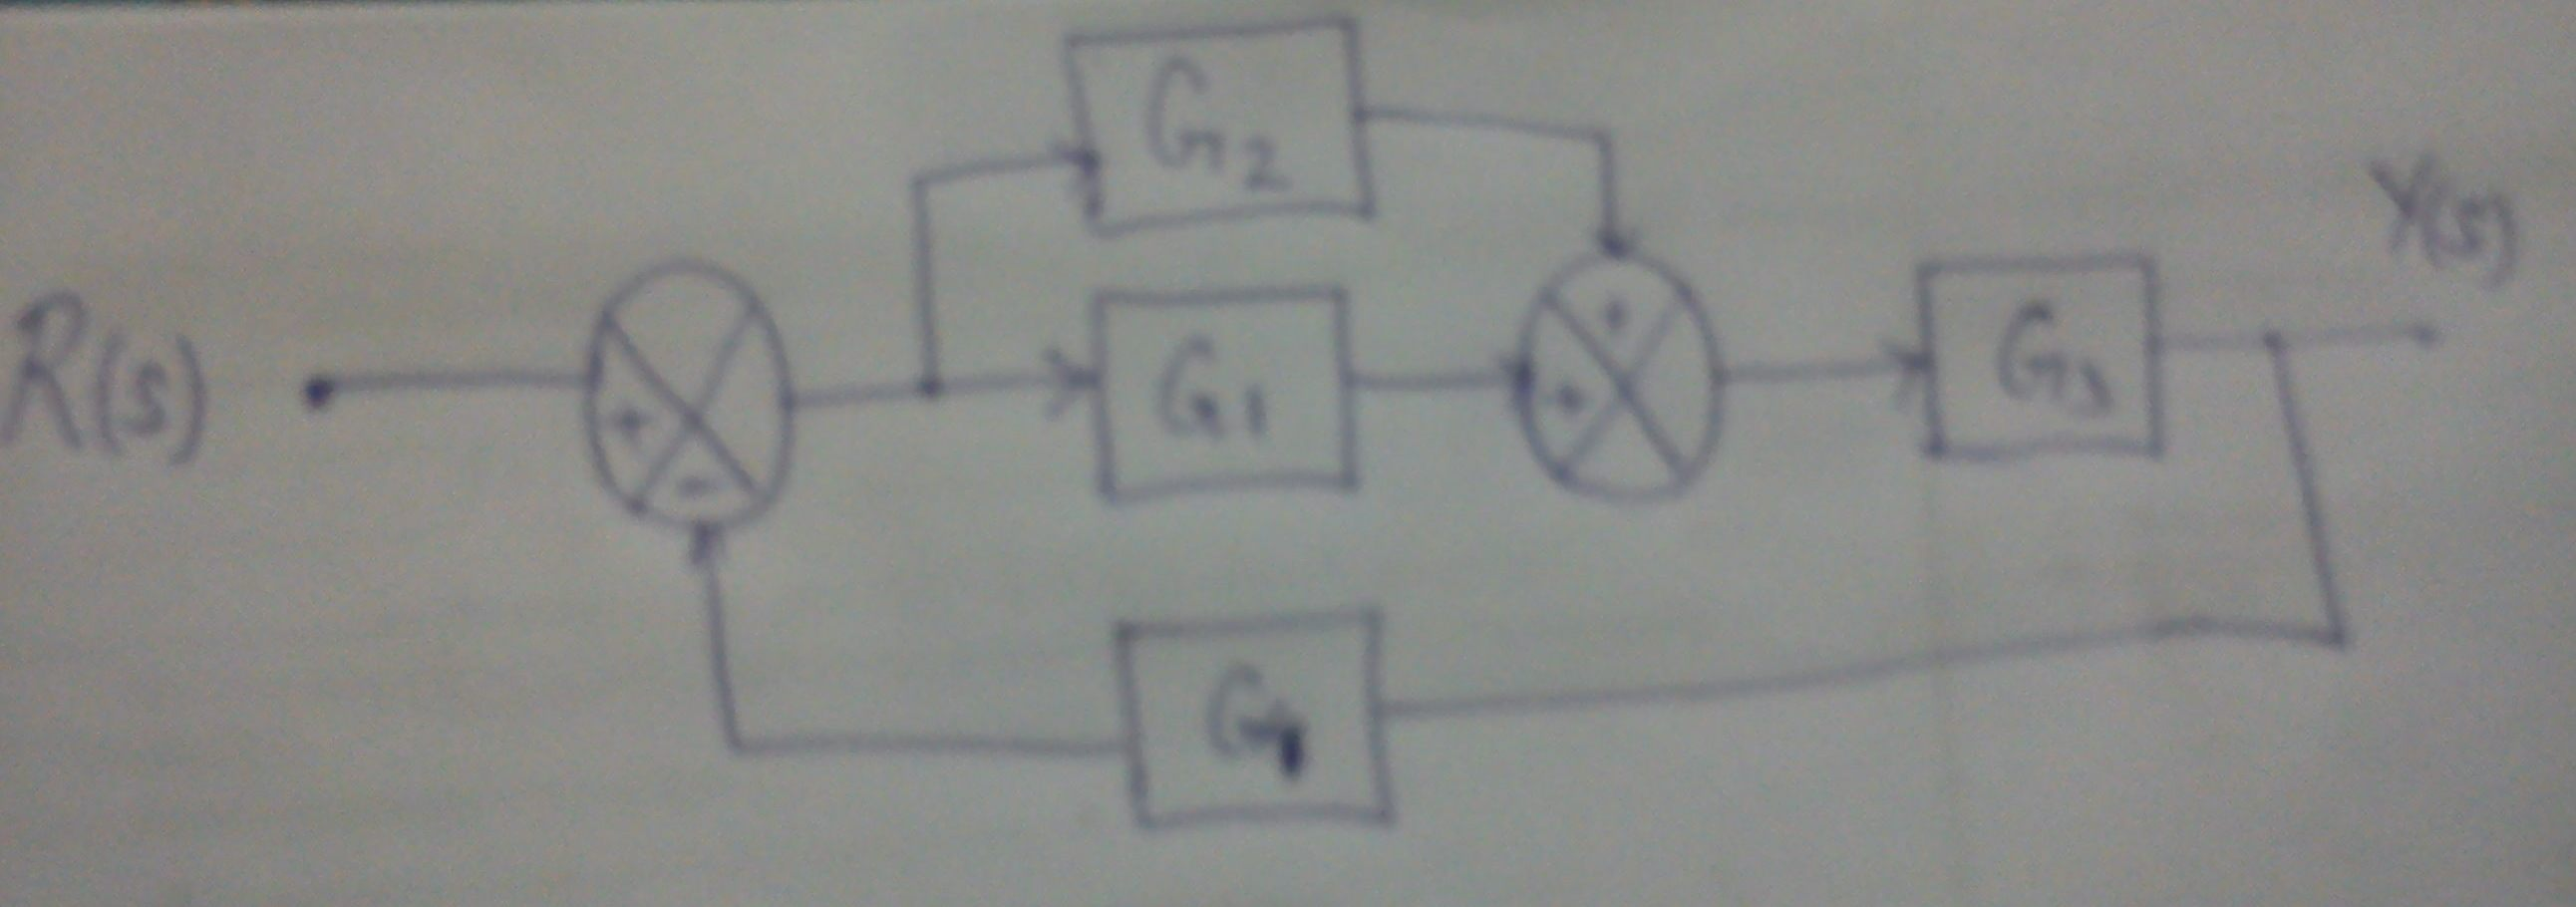 block diagram simplification matlab